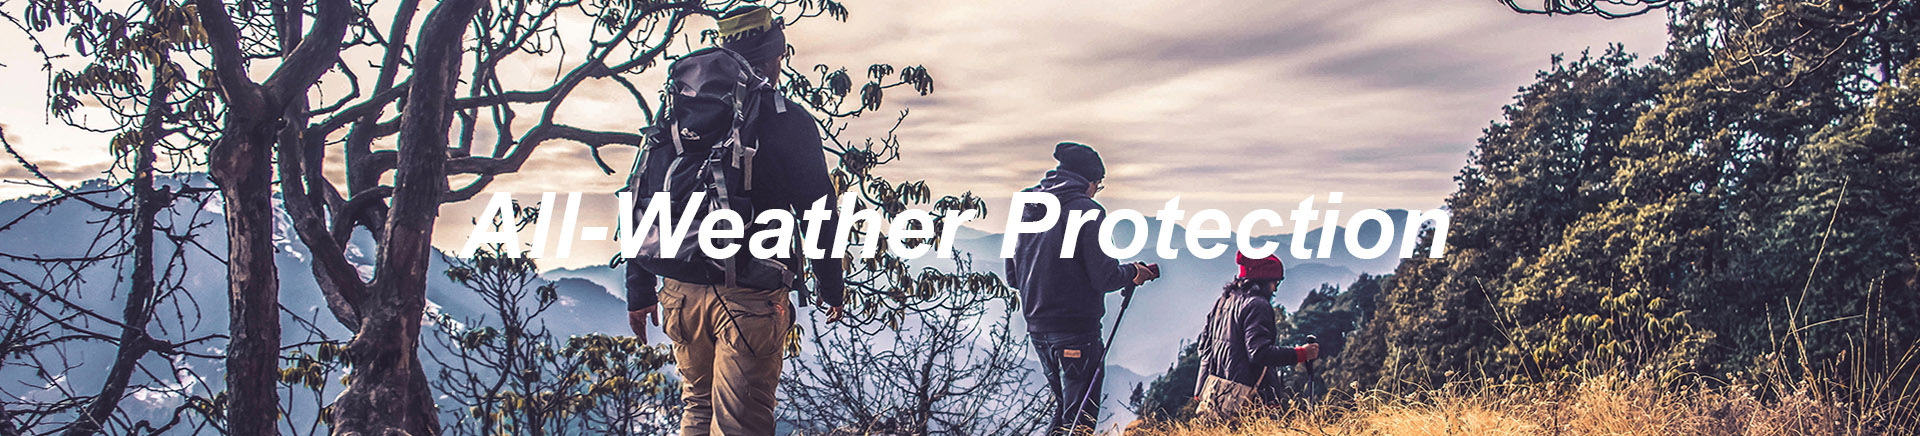 all-weather-protection-outdoor-clothing